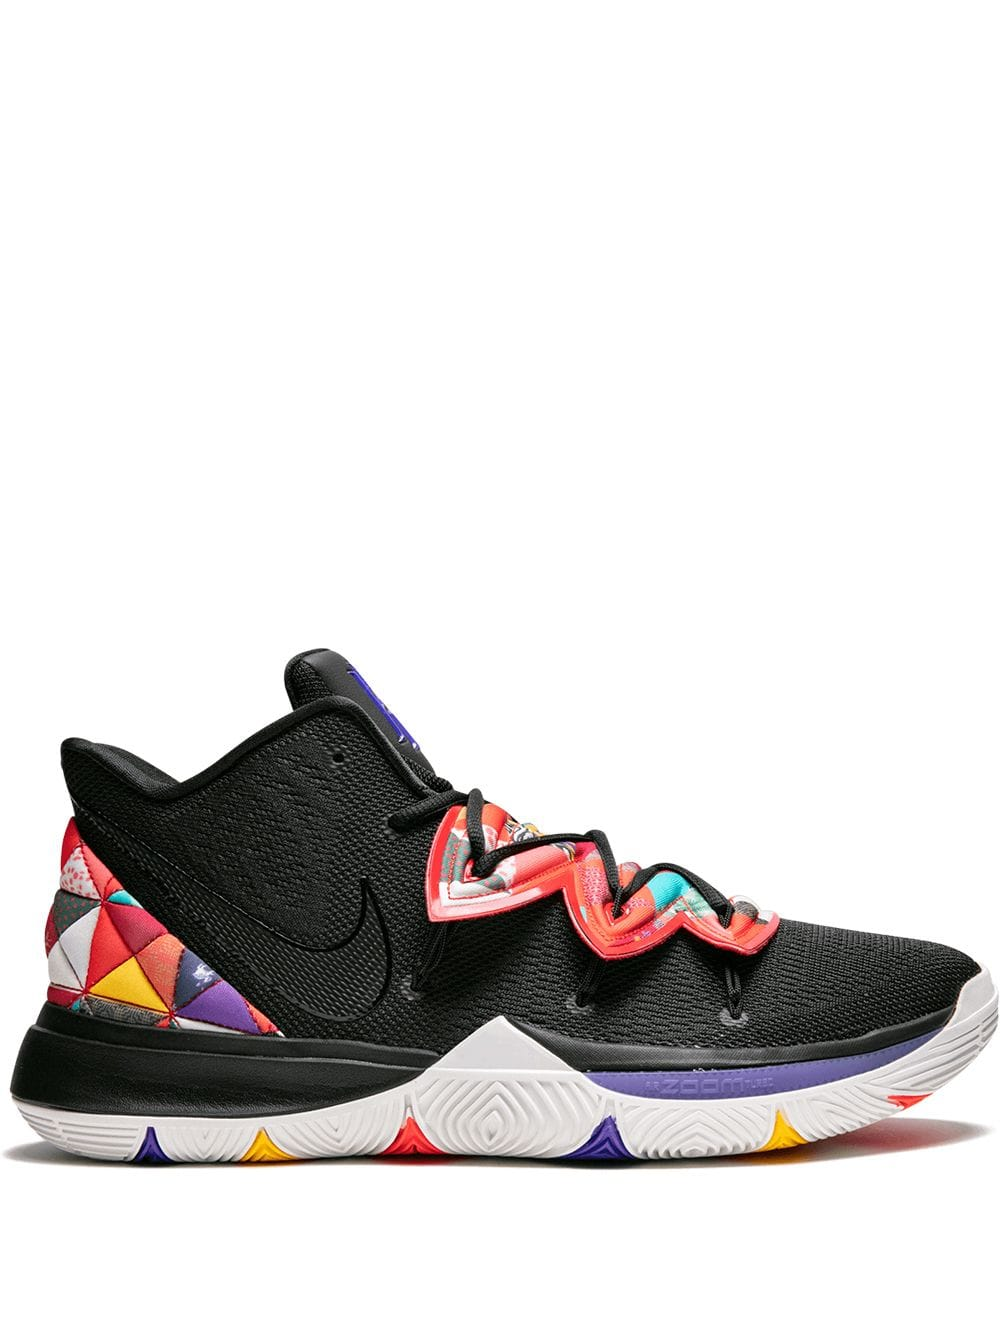 Nike Kyrie 5 Sneakers Farfetch In 2020 Kyrie Irving Shoes Womens Basketball Shoes Girls Basketball Shoes